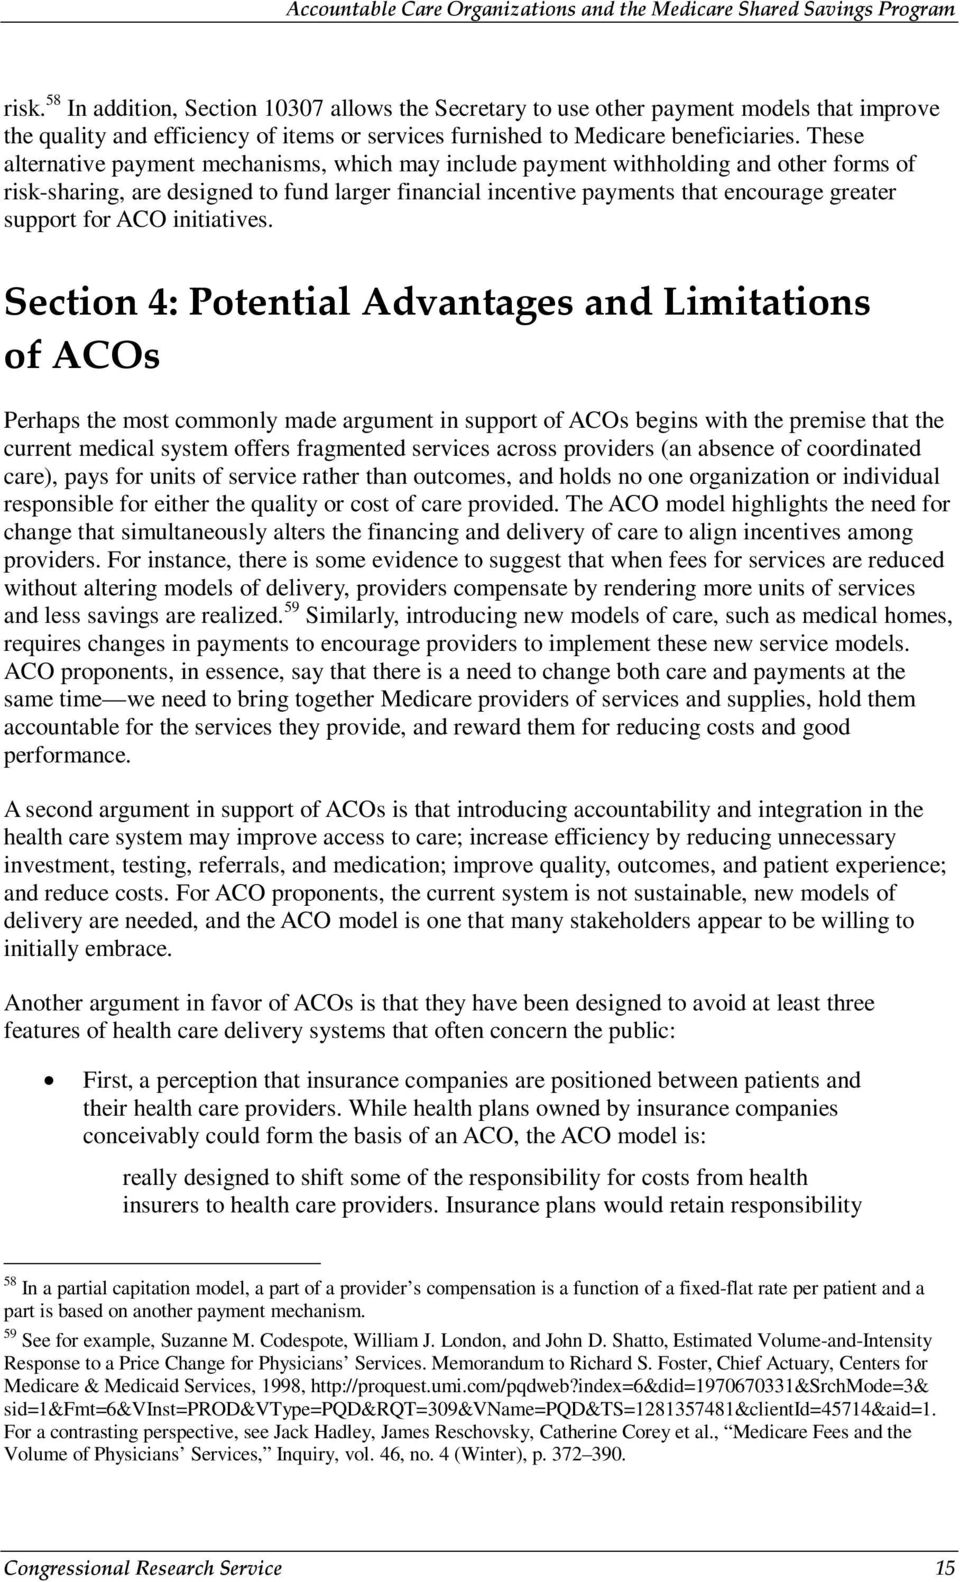 for ACO initiatives.